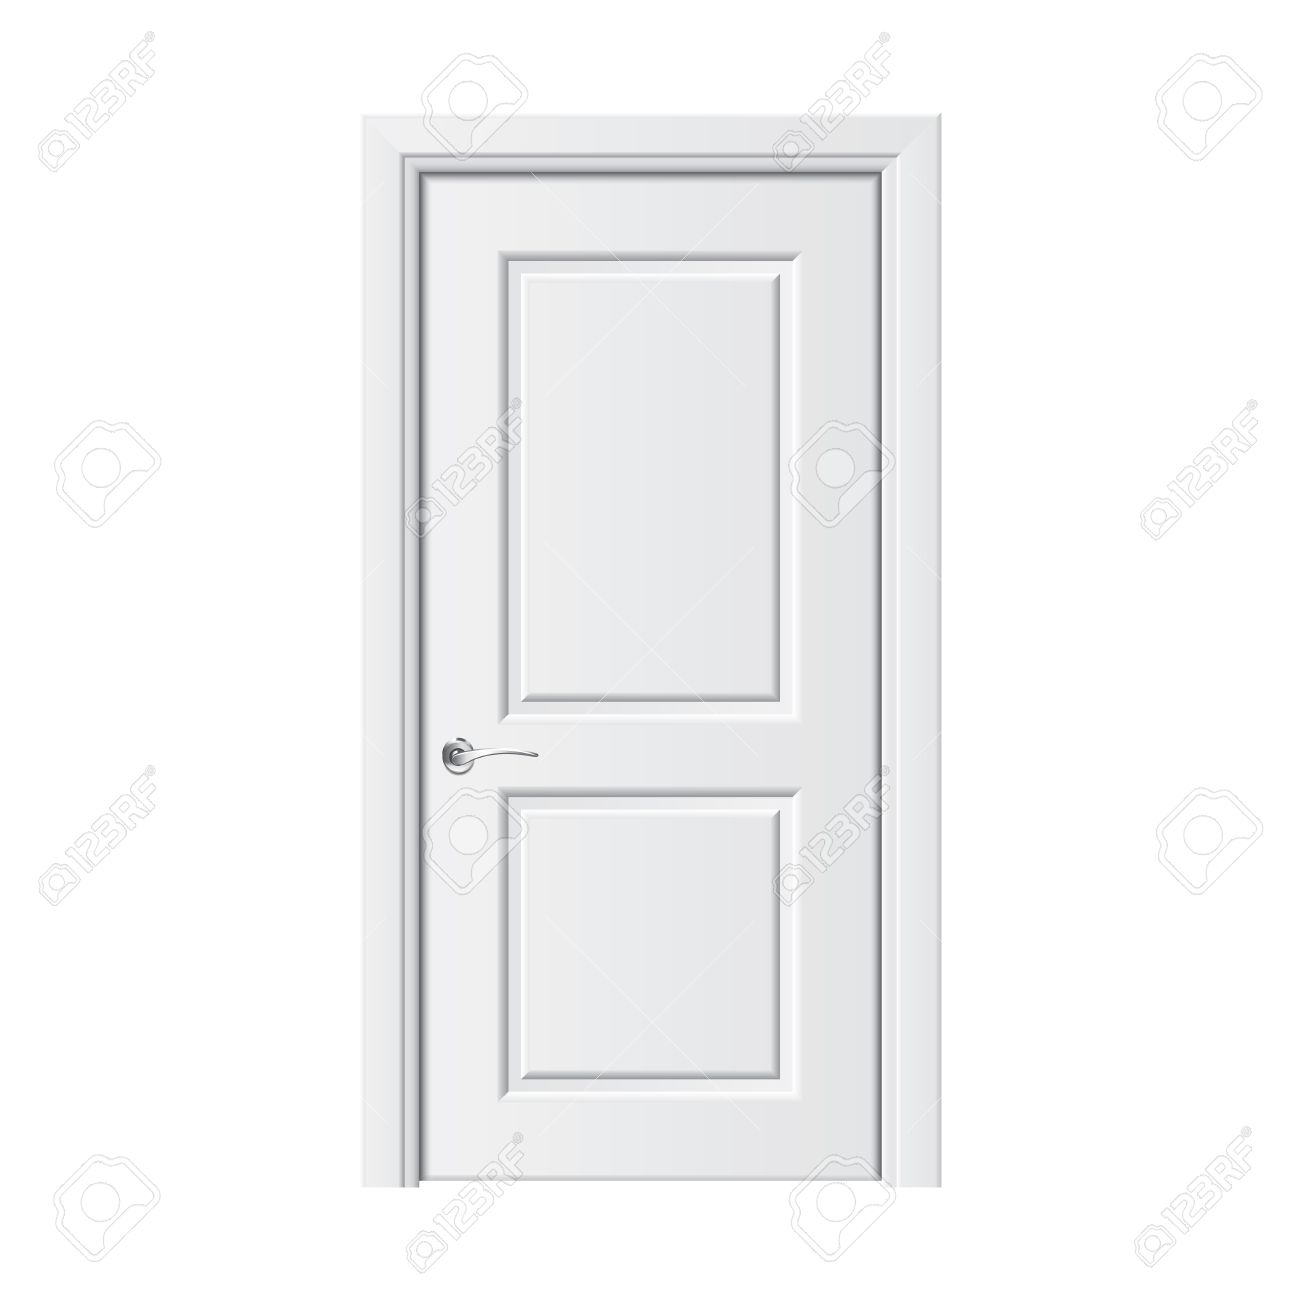 white door isolated on white photo realistic vector illustration stock vector 27347759